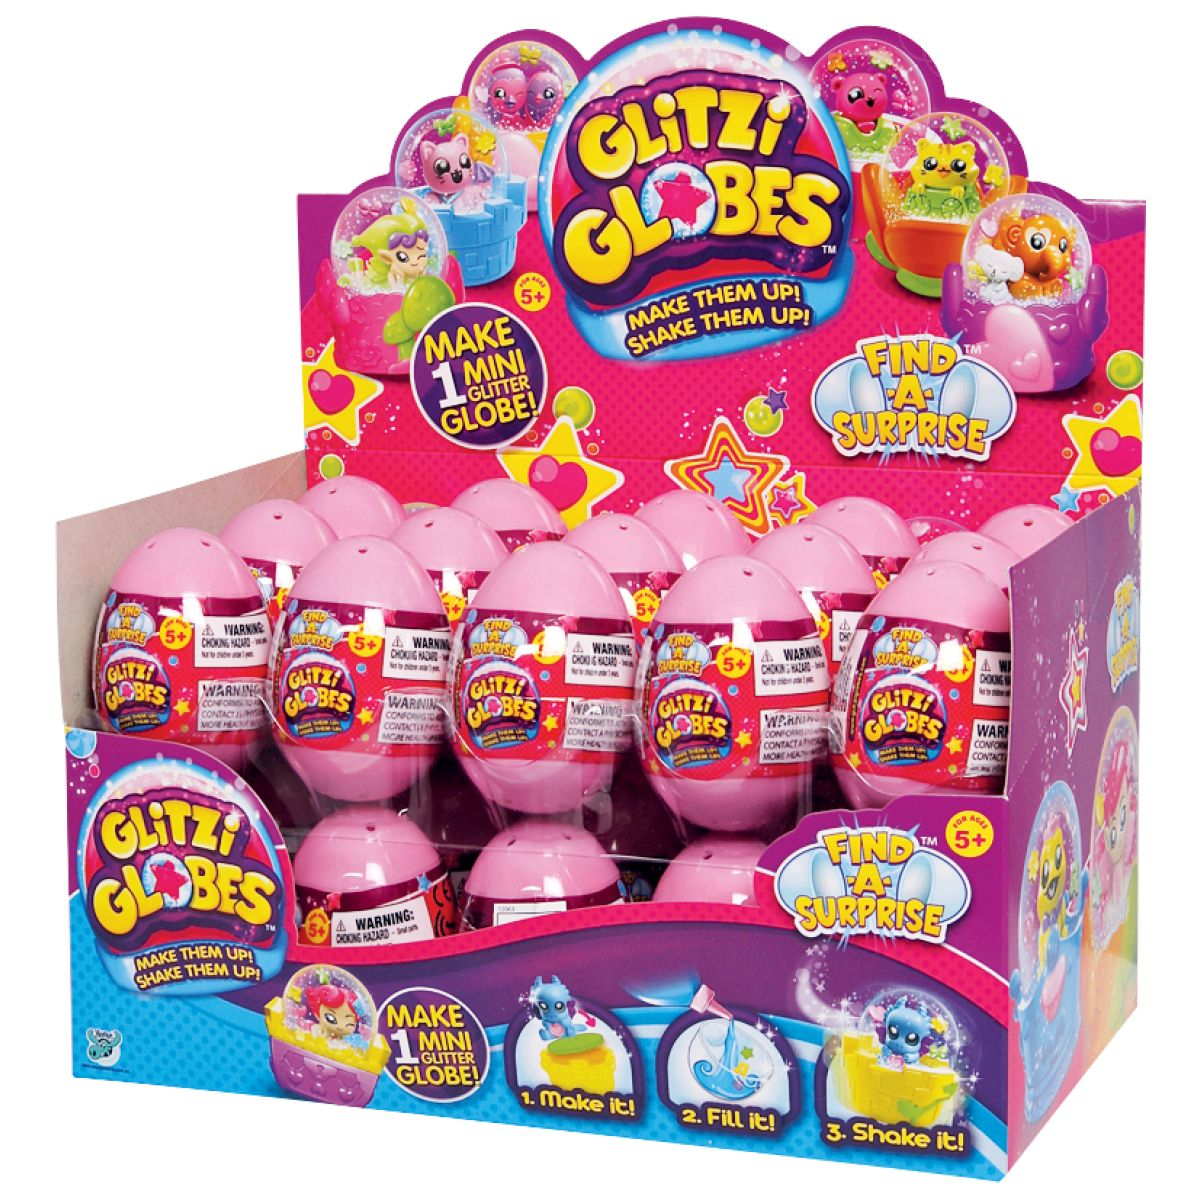 Toys r us christmas decorations uk - Awesome Glitzi Globes That You Can Find At Toys R Us For 2 99 Each